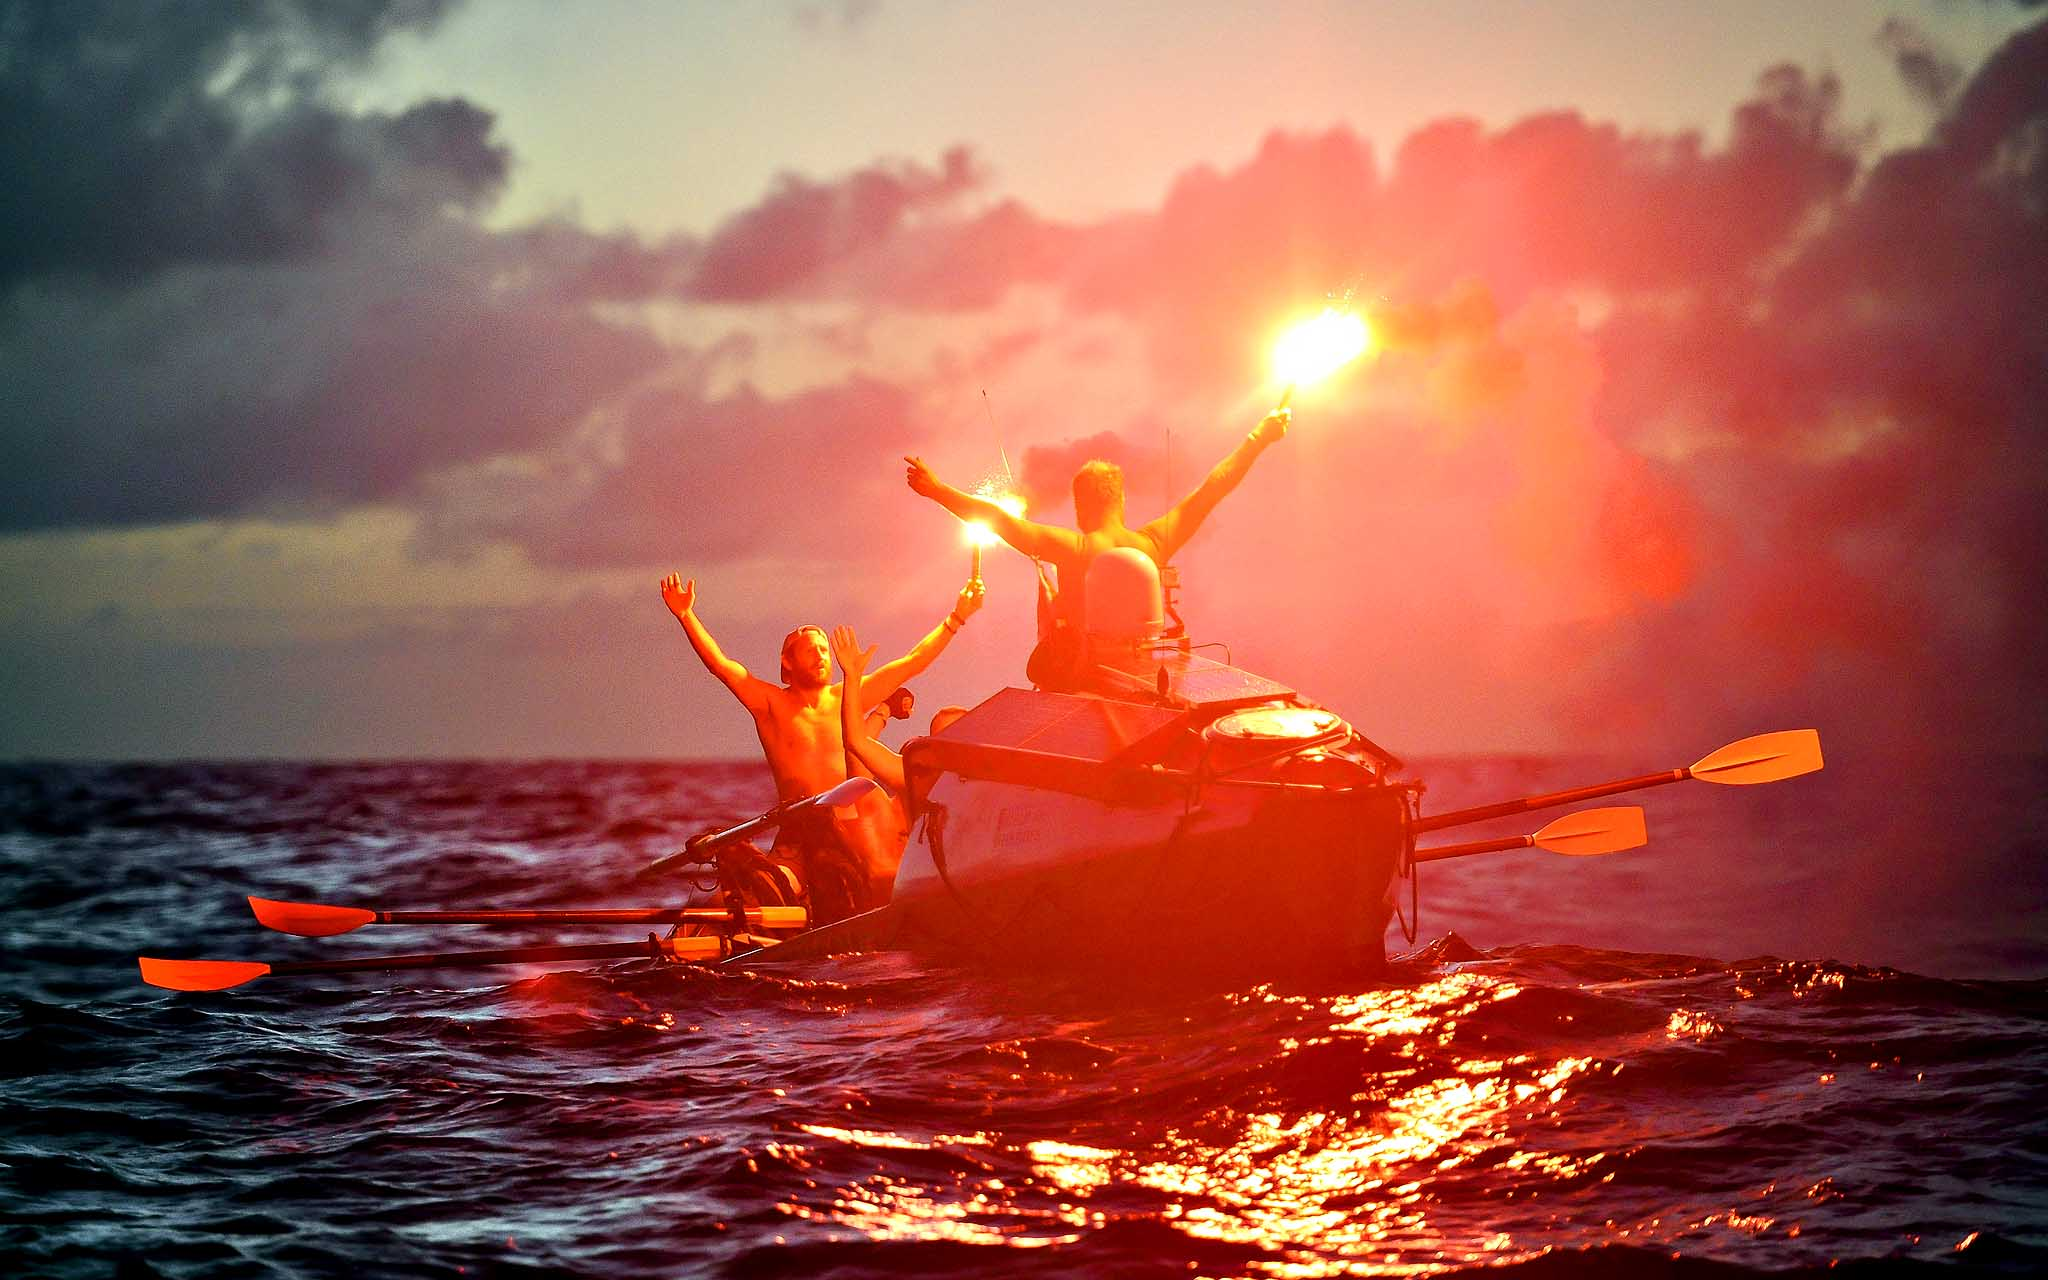 The Row2Recovery Team, made up of four British soldiers, light flares as they cross the finish line off the coast of the Caribbean island of Antigua after rowing across the Atlantic Ocean. PRESS ASSOCIATION Photo. Issue date: Wednesday January 22, 2014.